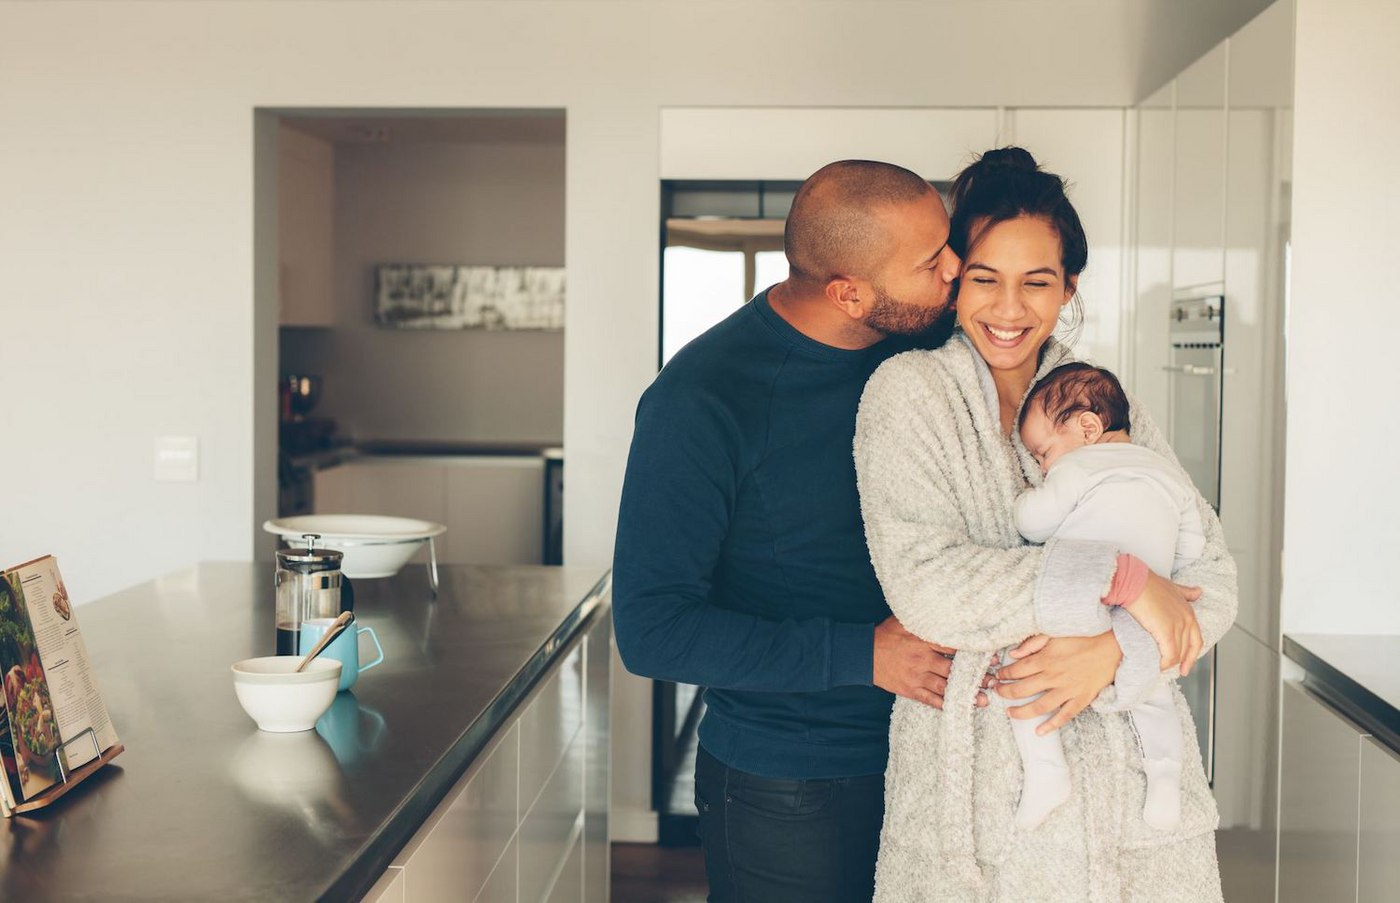 Does IVF Hurt? Common IVF Questions Answered